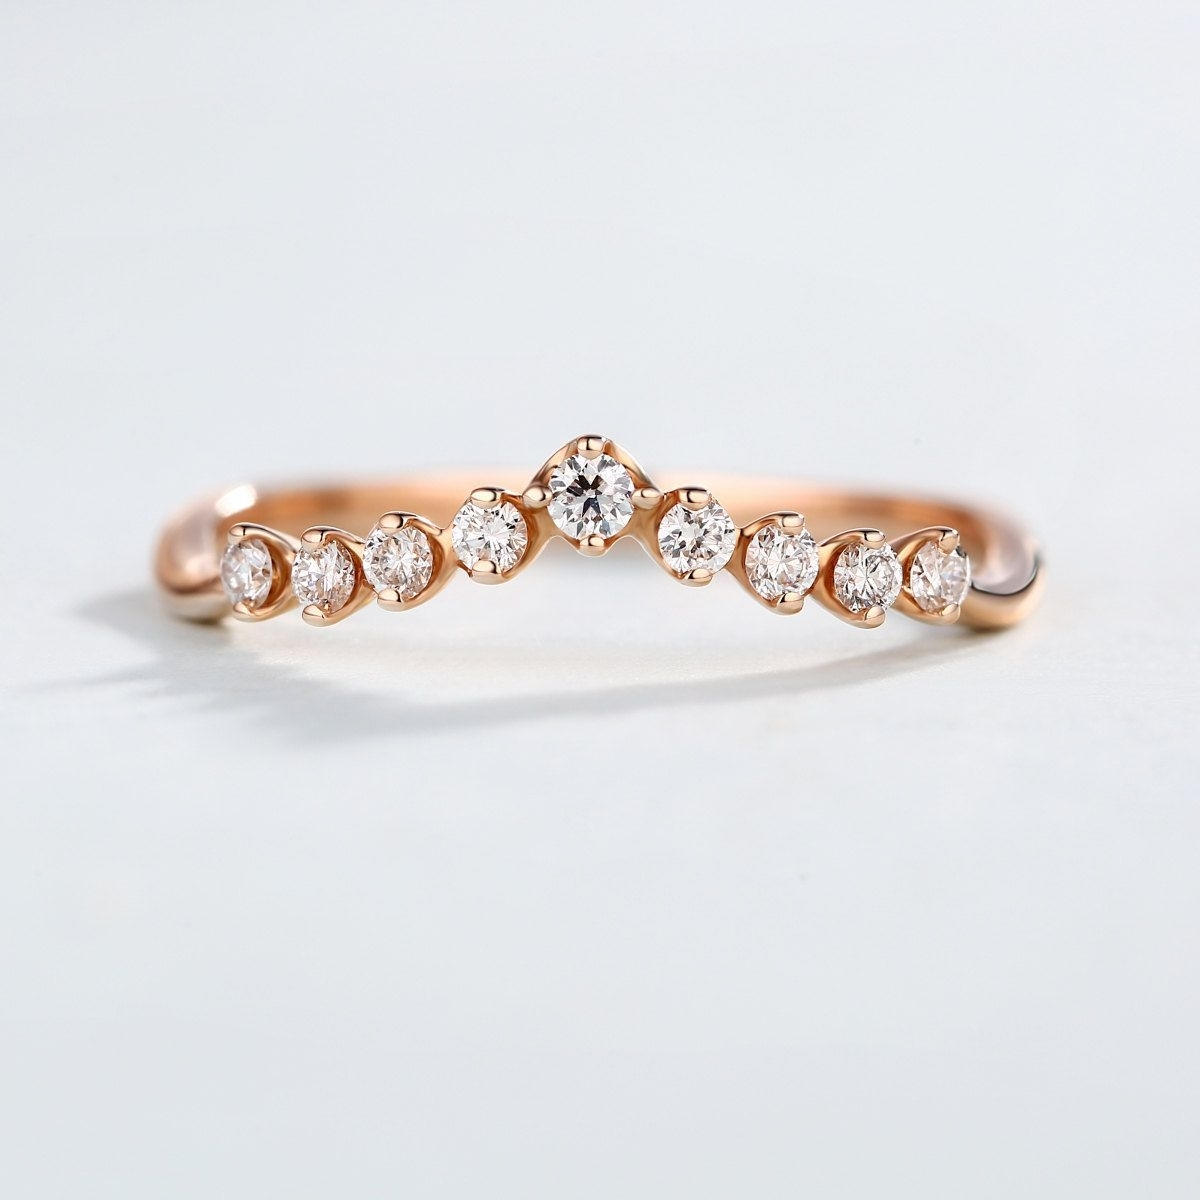 Curved Diamond Ring, Wedding Band 14K Rose Gold Ring Chevron Ring For Latest Three Stackable Chevron Diamond Rings (View 5 of 15)